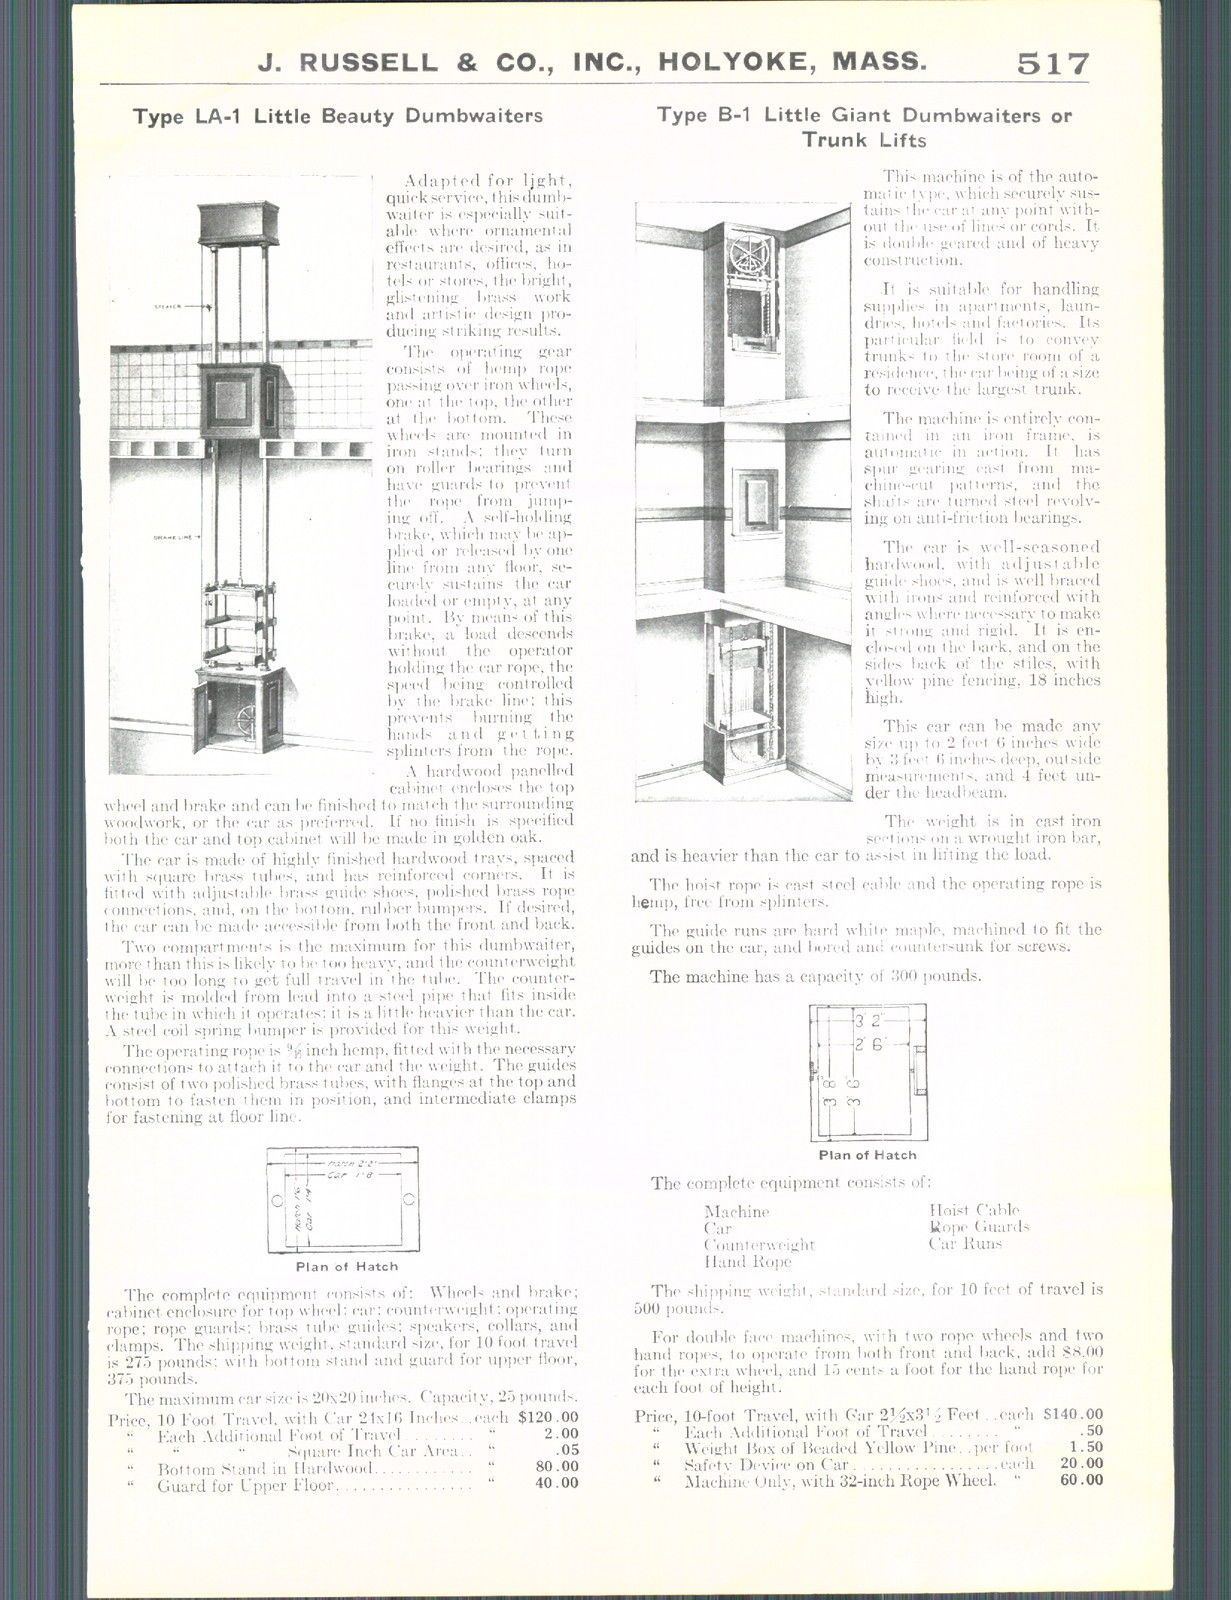 Pin On Home Loundry Room Dumbwaiter Plans